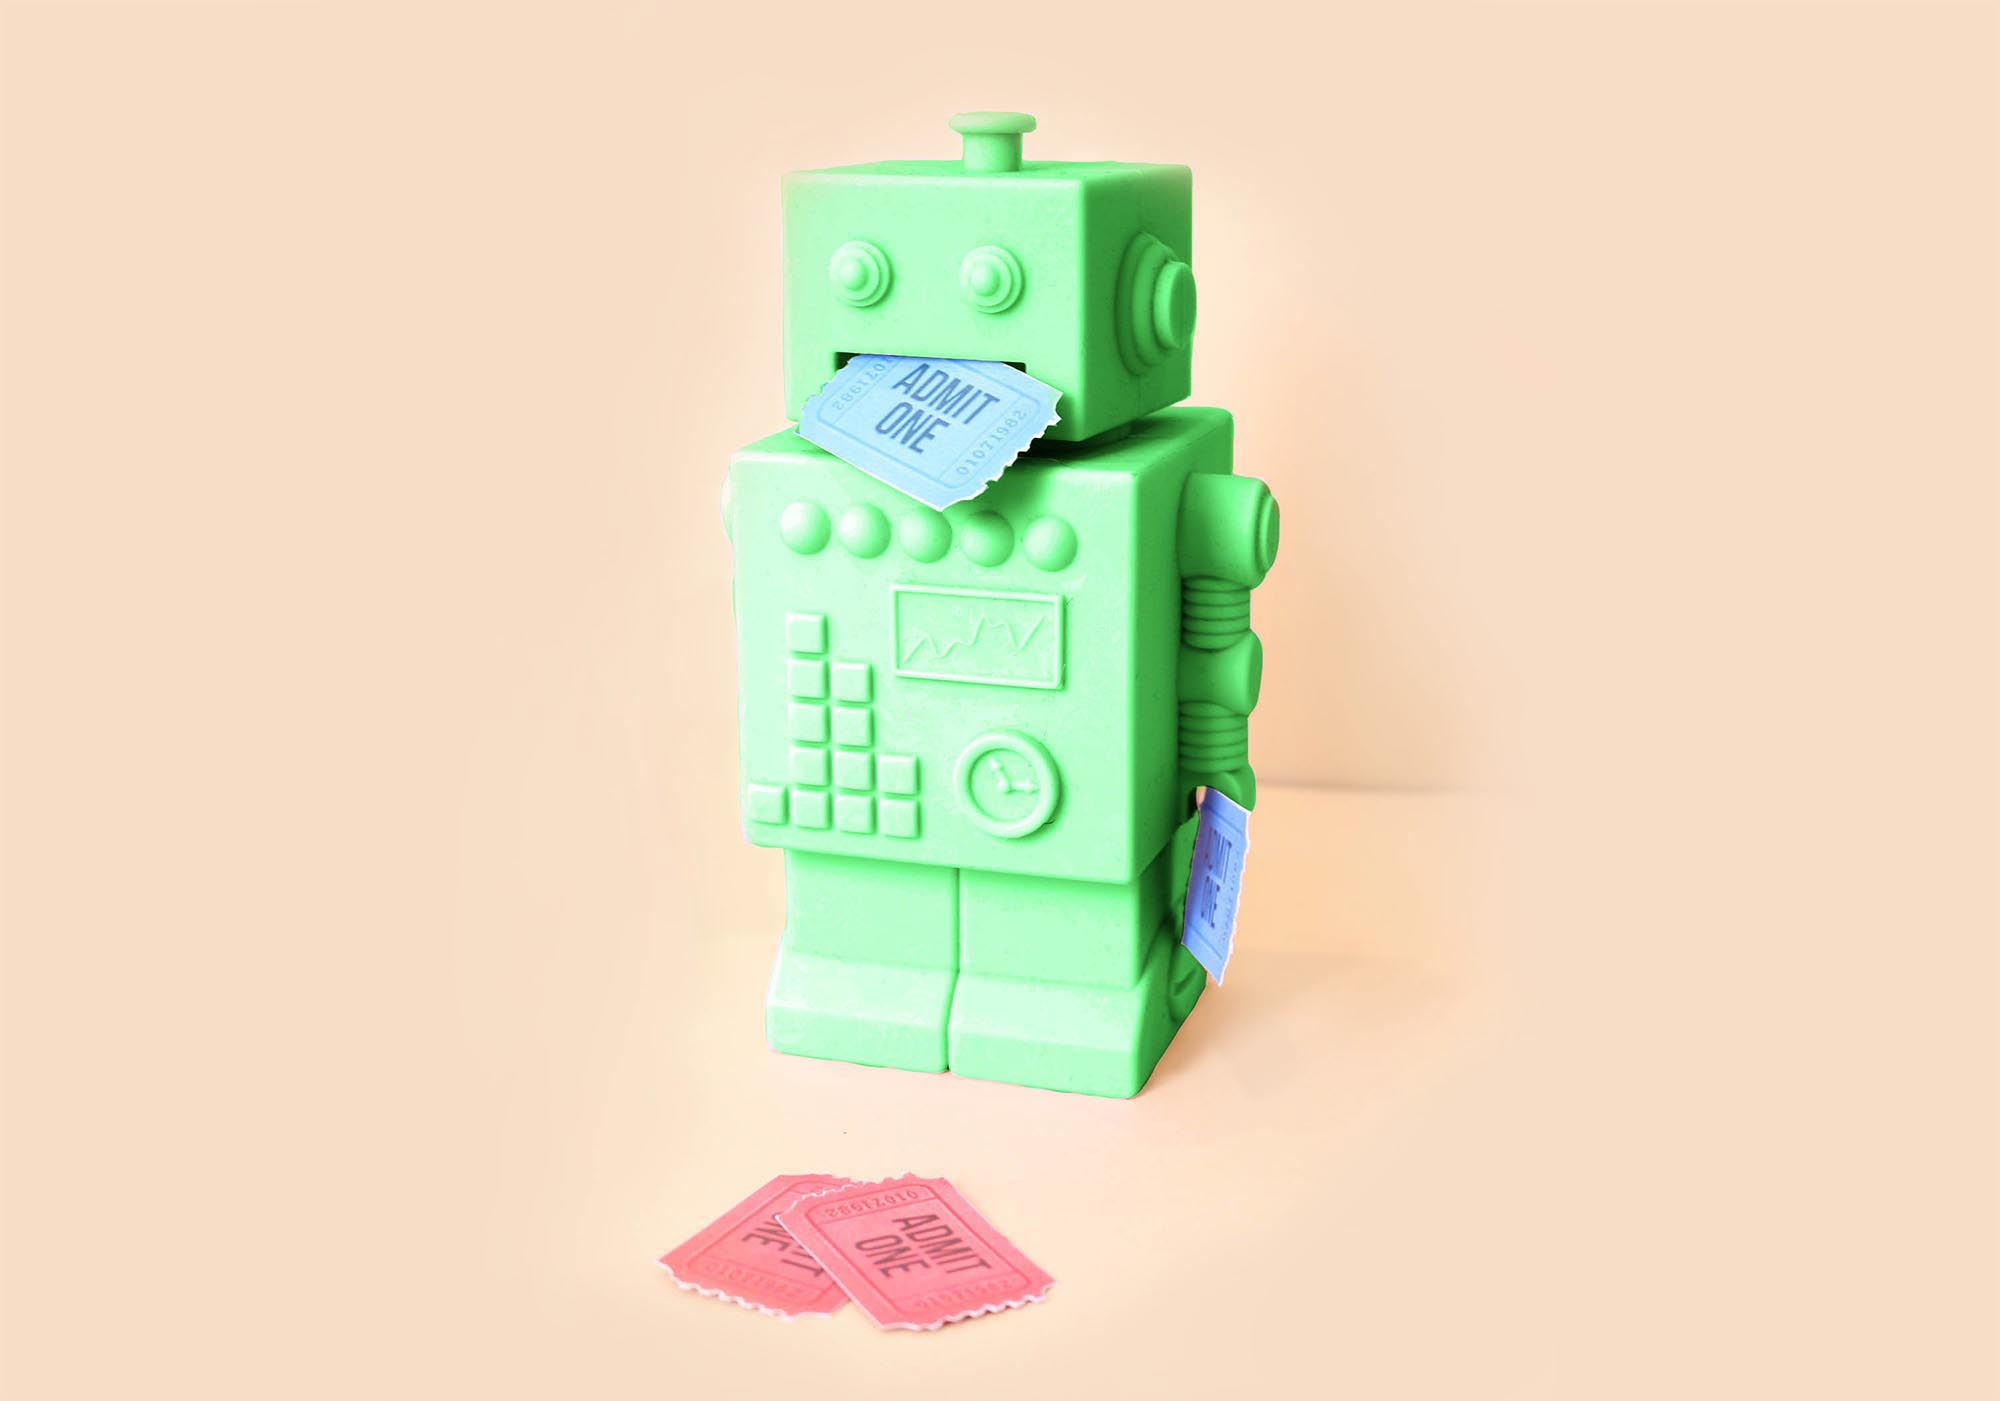 Green ticket bot with blue ticket in its mouth